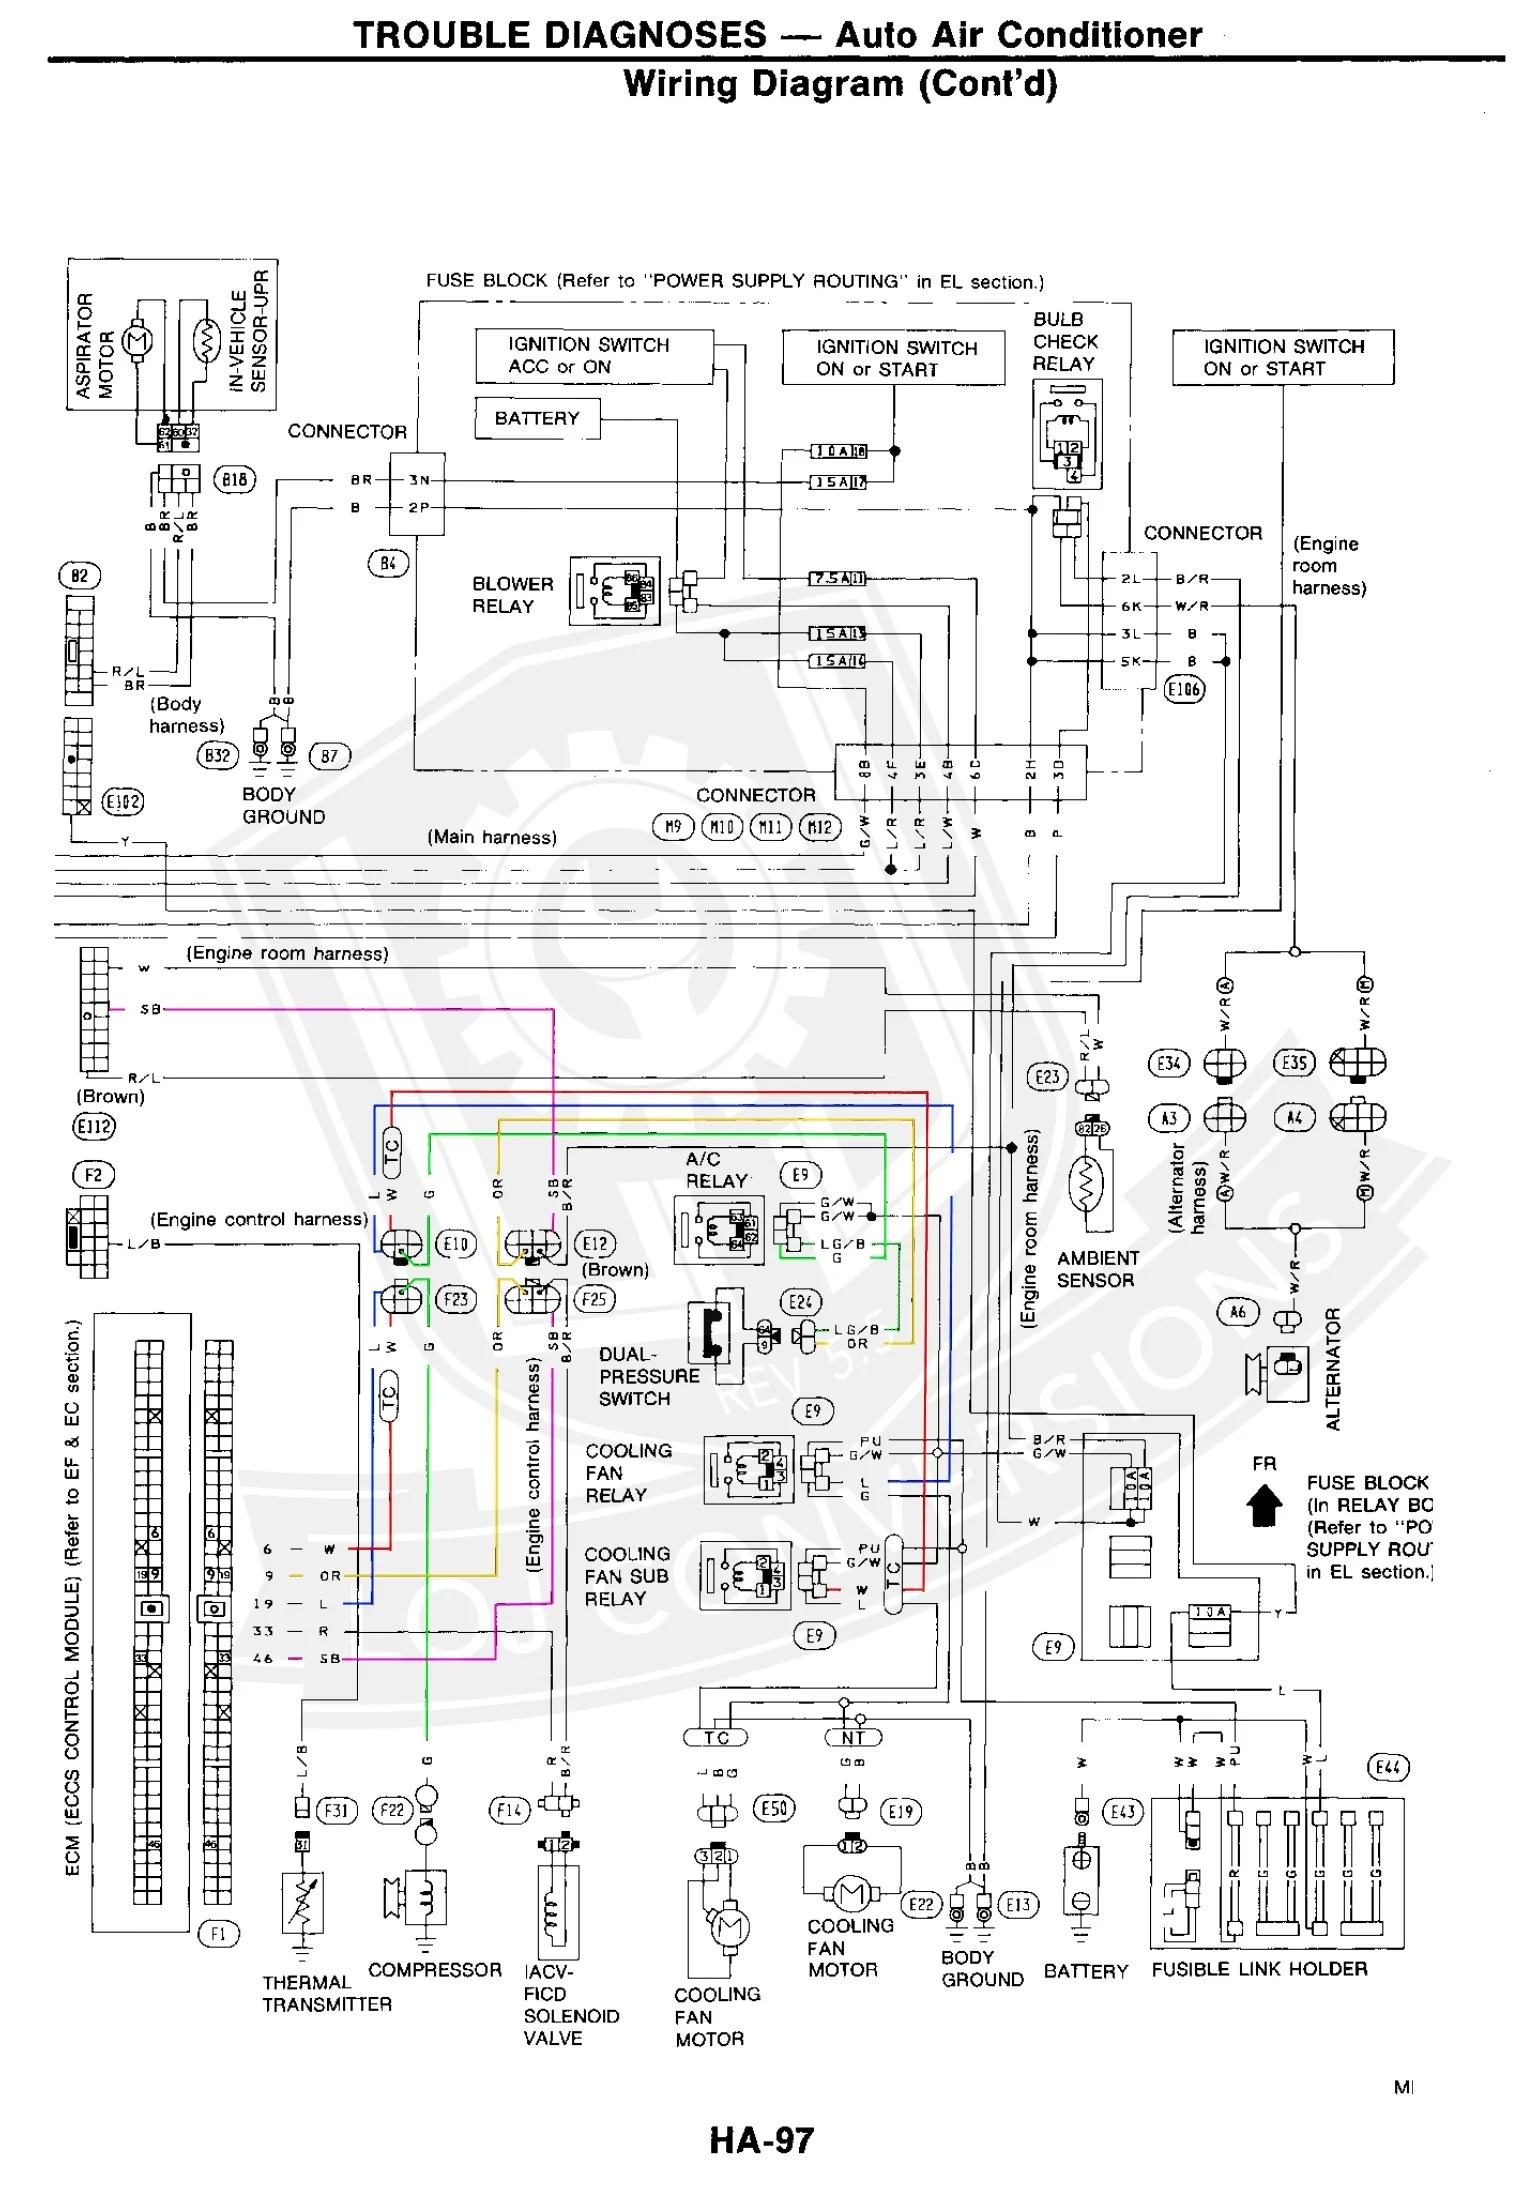 wiring diagram besides nissan 300zx engine bay also 300zx engine 300zx twin turbo engine diagram twinturbonet nissan 300zx [ 1515 x 2194 Pixel ]